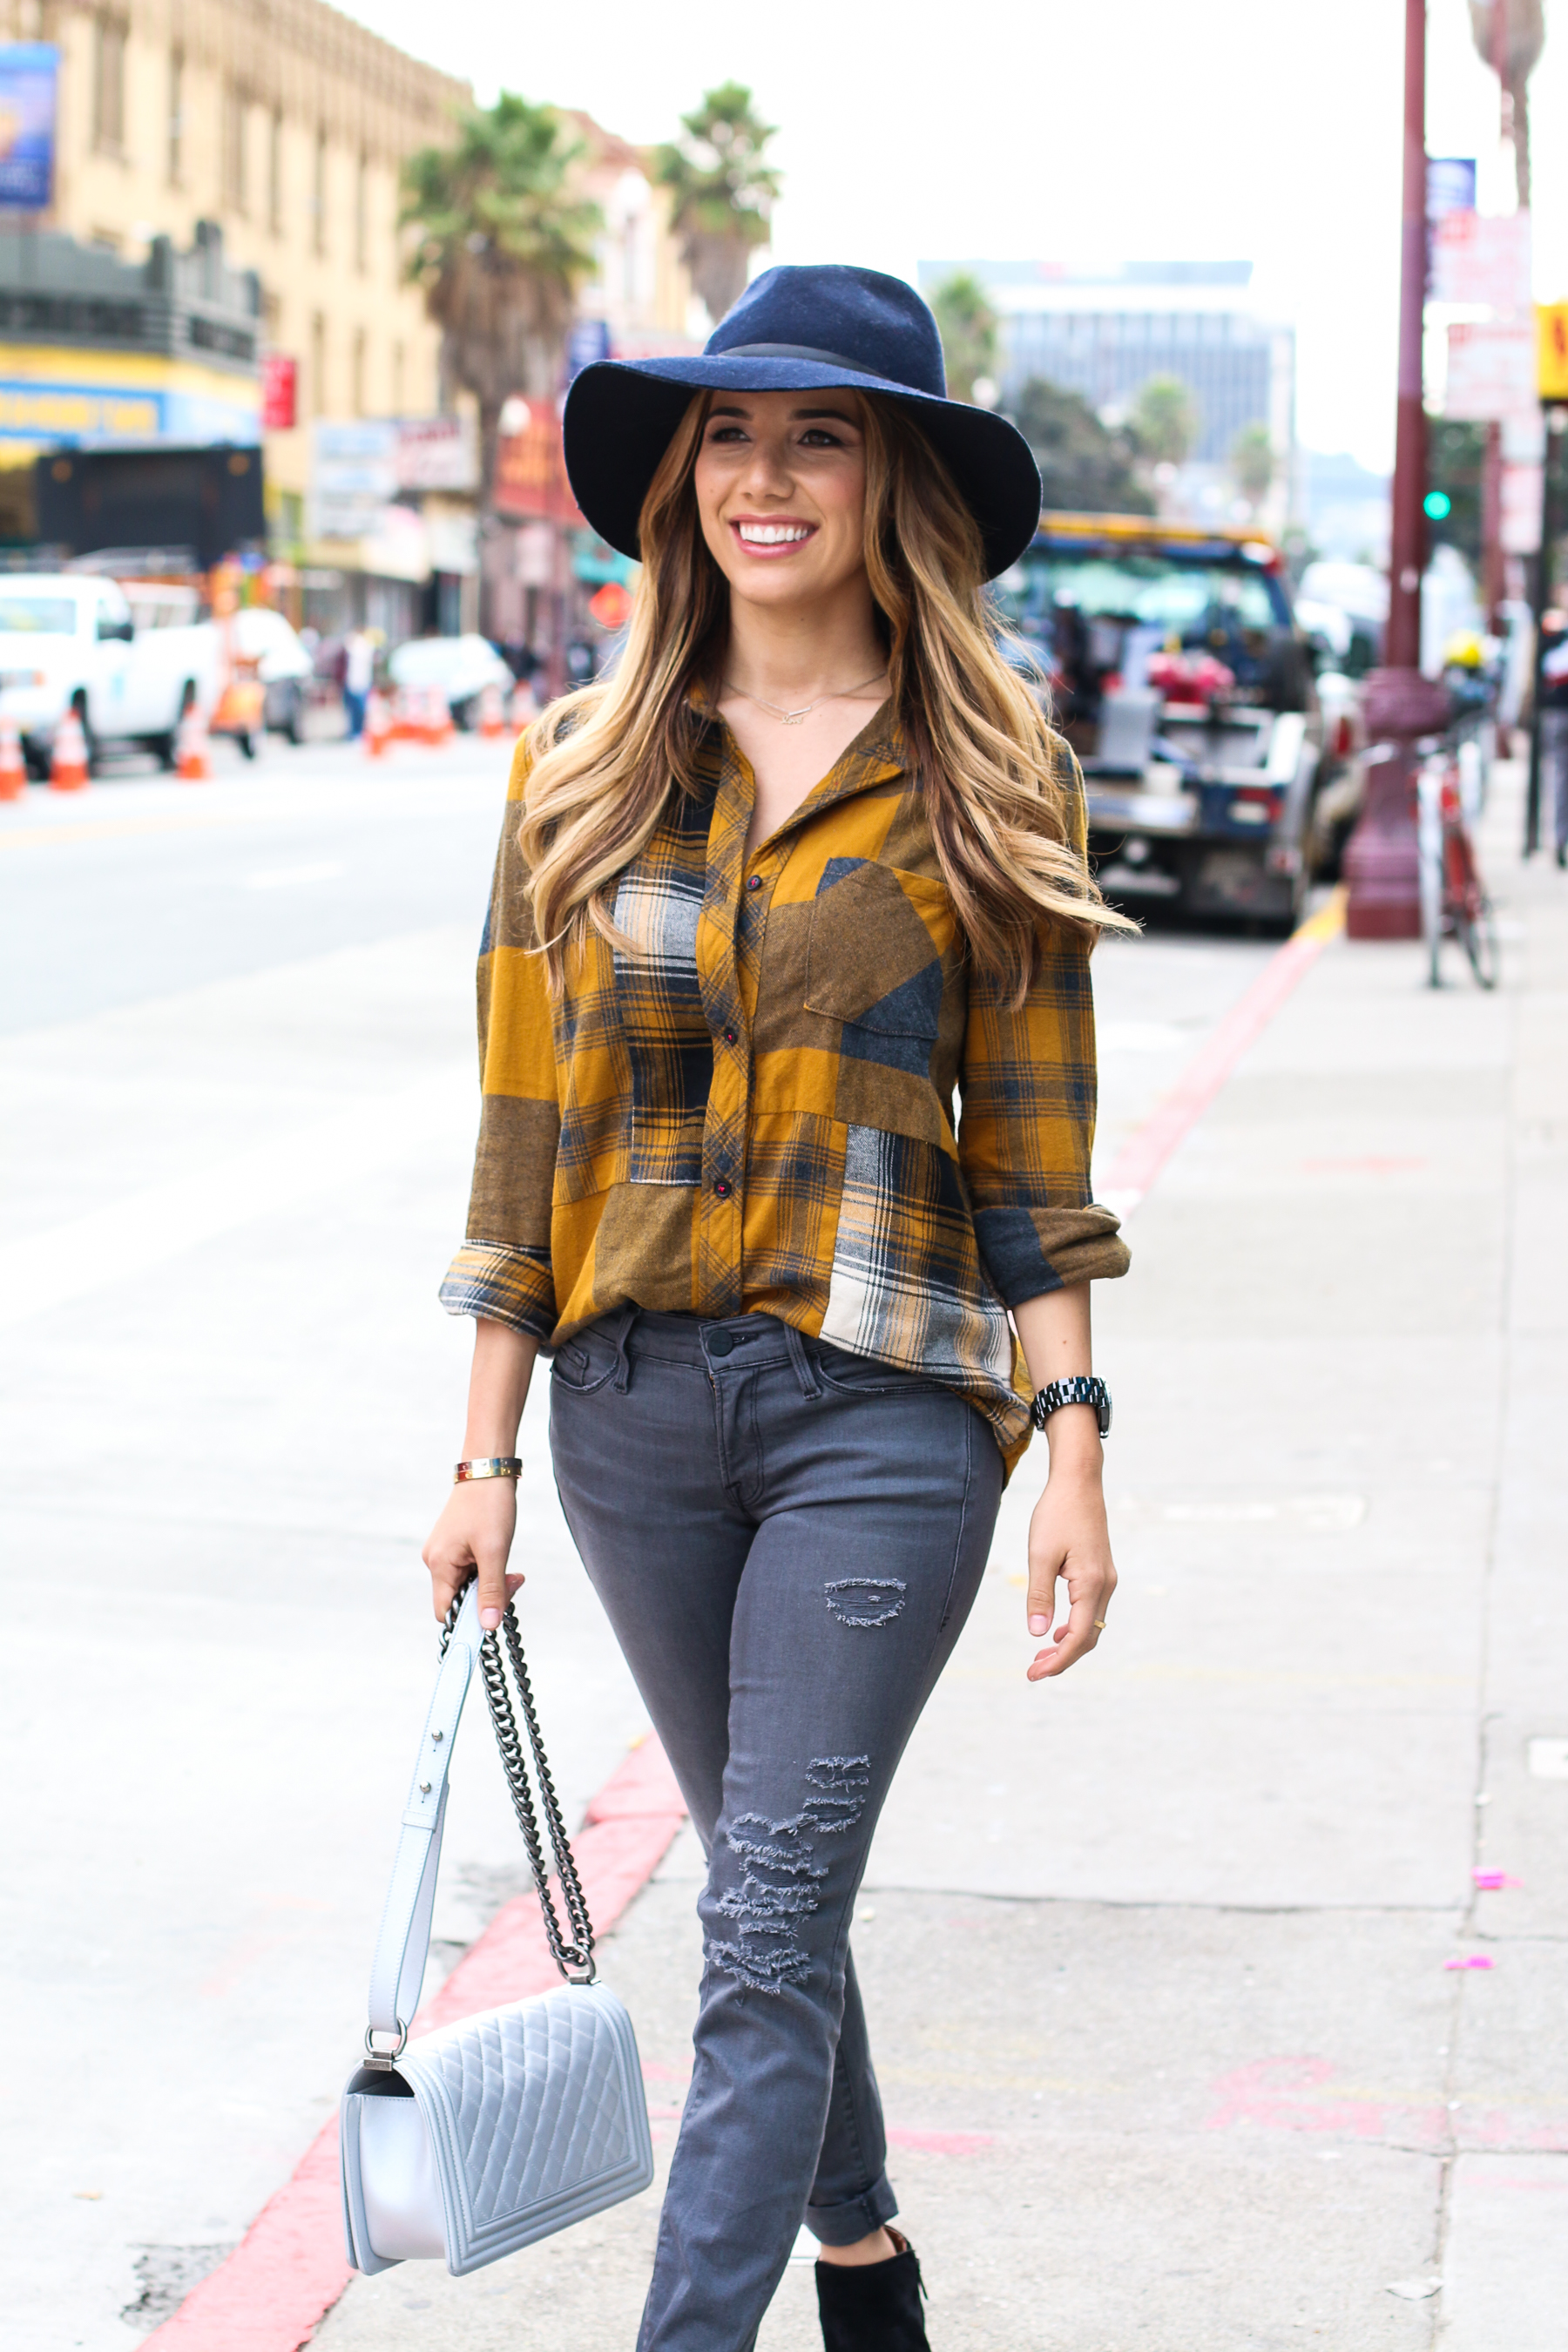 Ariana-Lauren-Fashion-Born-Blogger-Plaid-Shirt-Gray-Jean-Mission-District-San-Francisco-Photography-by-Ryan-Chua-6972